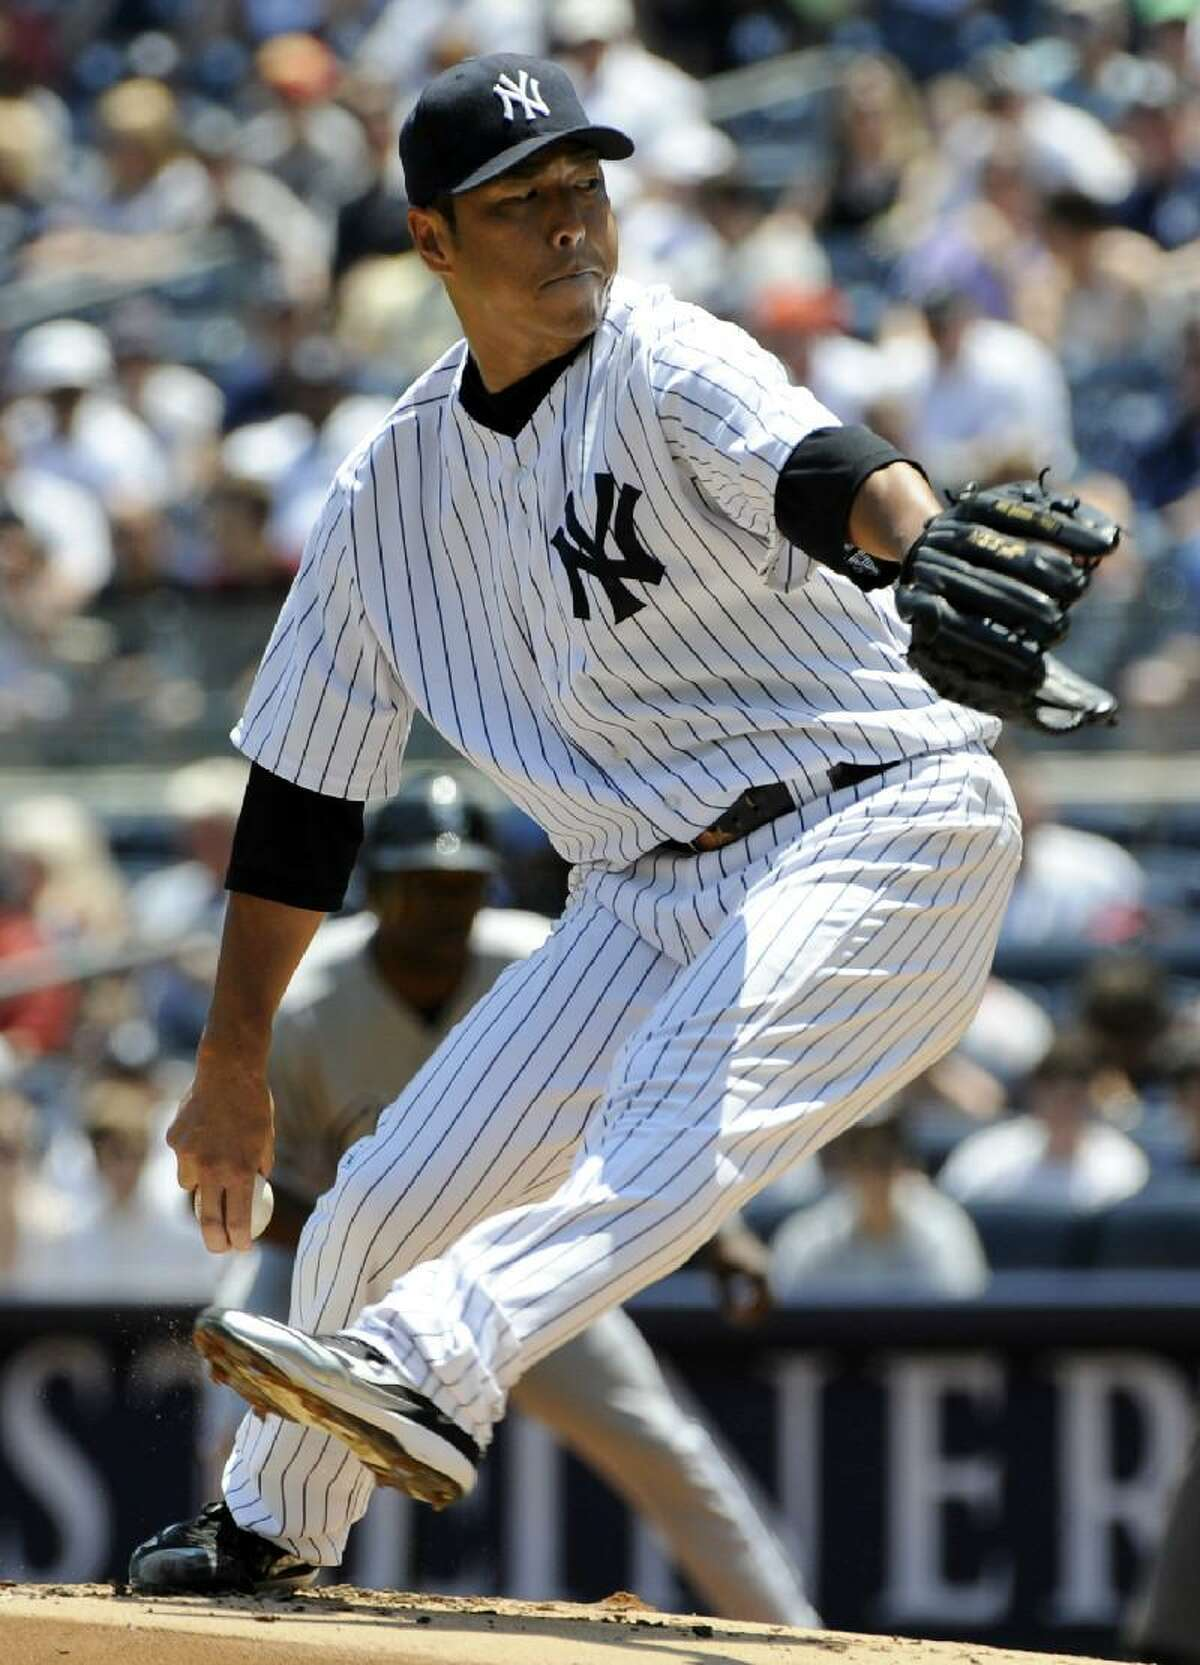 ASSOCIATED PRESS New York Yankees starter Hiroki Kuroda delivers a pitch to the Chicago White Sox during the first inning of Saturday's game at Yankee Stadium in New York. Kuroda struck out 11 and got the win as the Yankees defeated the White Sox 4-0.